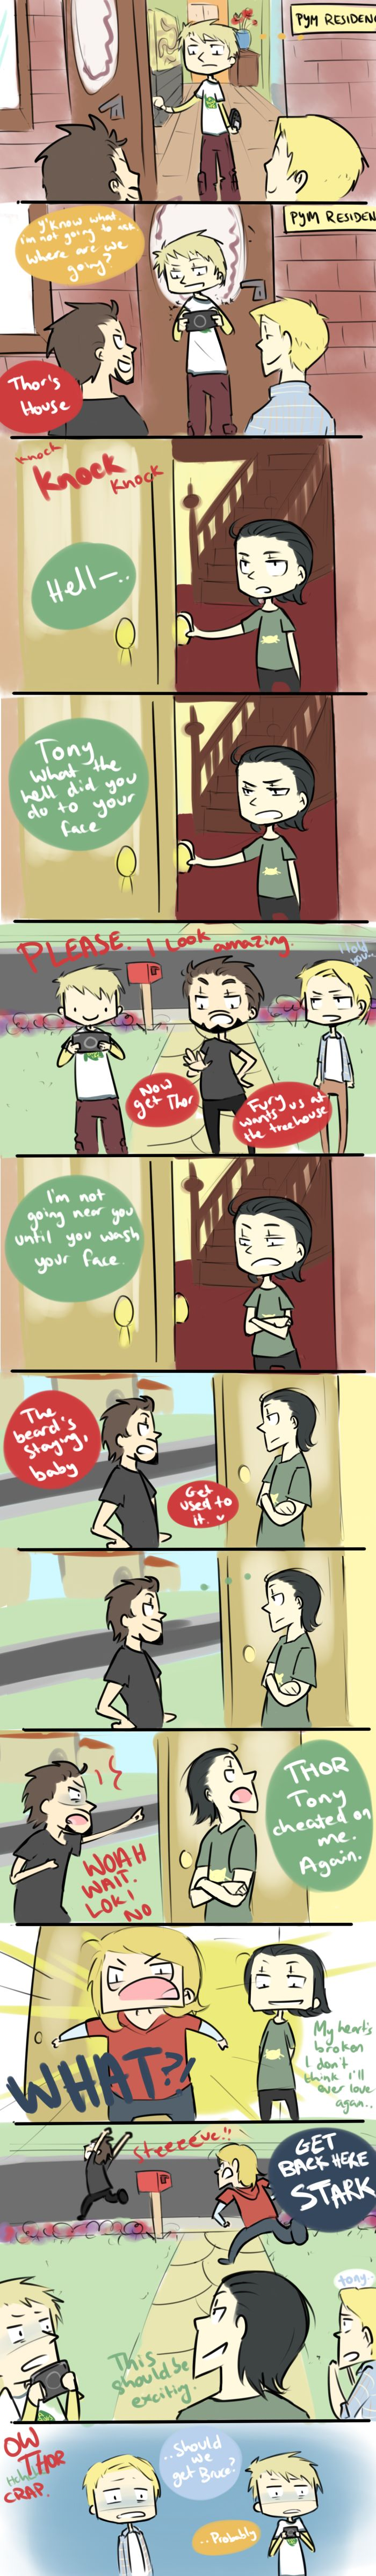 Tonys Beard Part 2 by ~blargberries on deviantART (why dose this make it seem like they are in love )